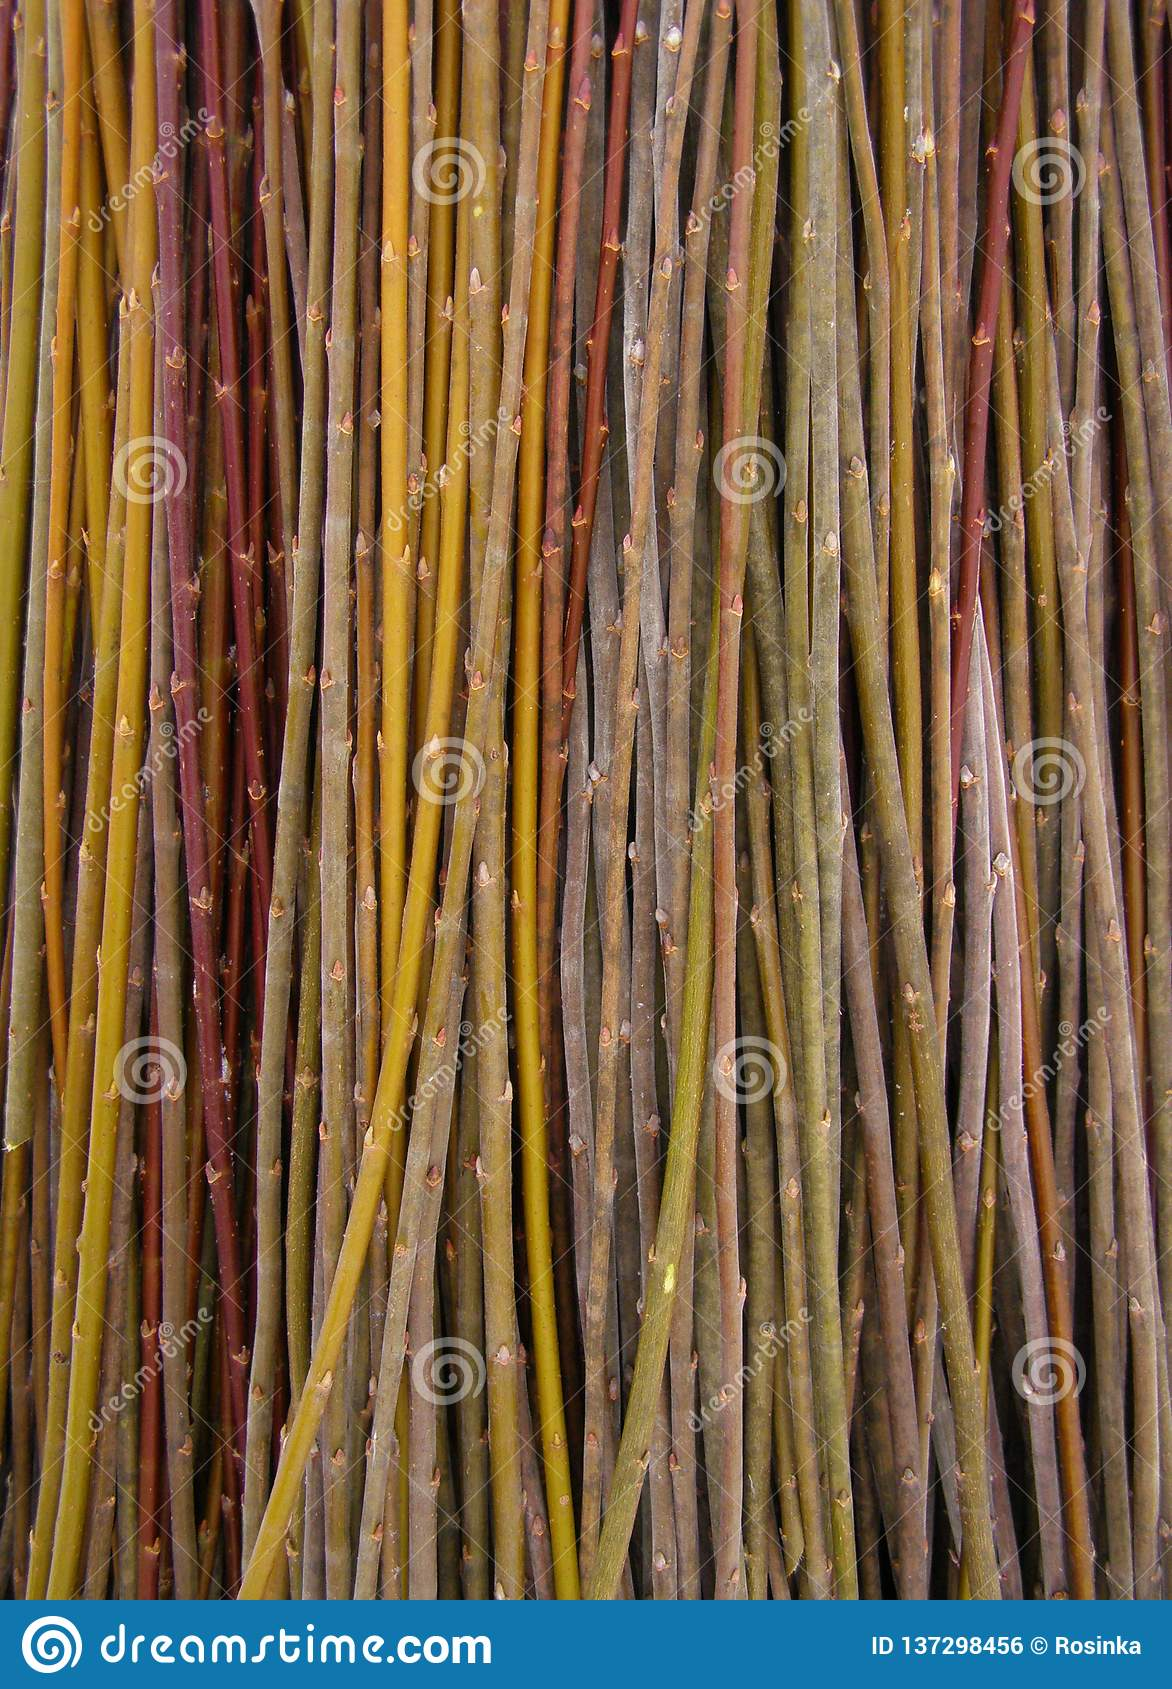 A Lot Of Willow Twigs Raw Material For Basket Weaving Stock Photo Image Of Natural Craft 137298456